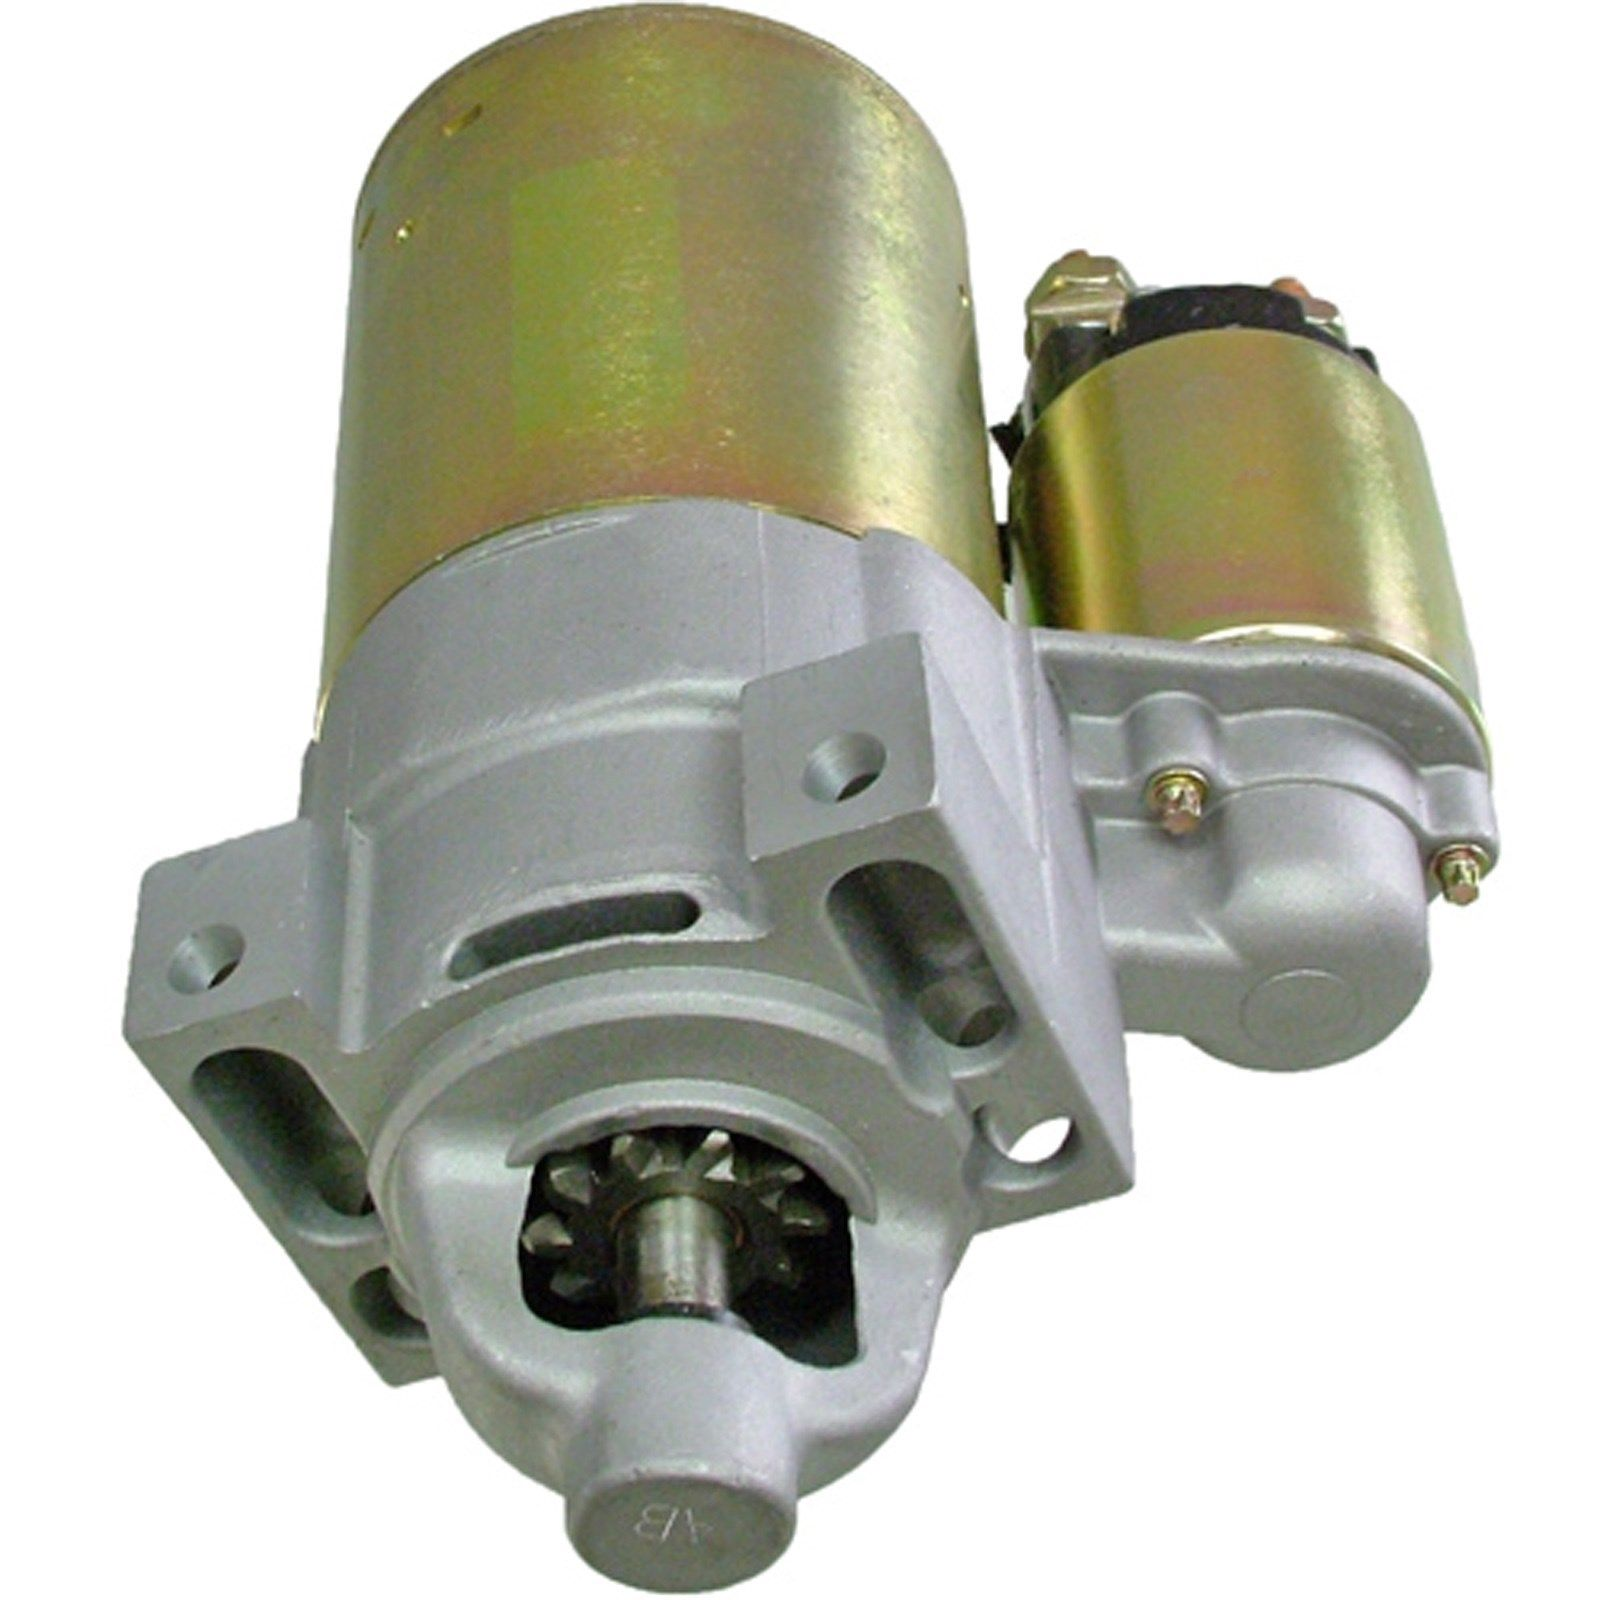 Kohler Engine Starter Replaces 2509811 25 098 11 S Command 18 Hp Diagram For Dixie Chopper 23 Ch